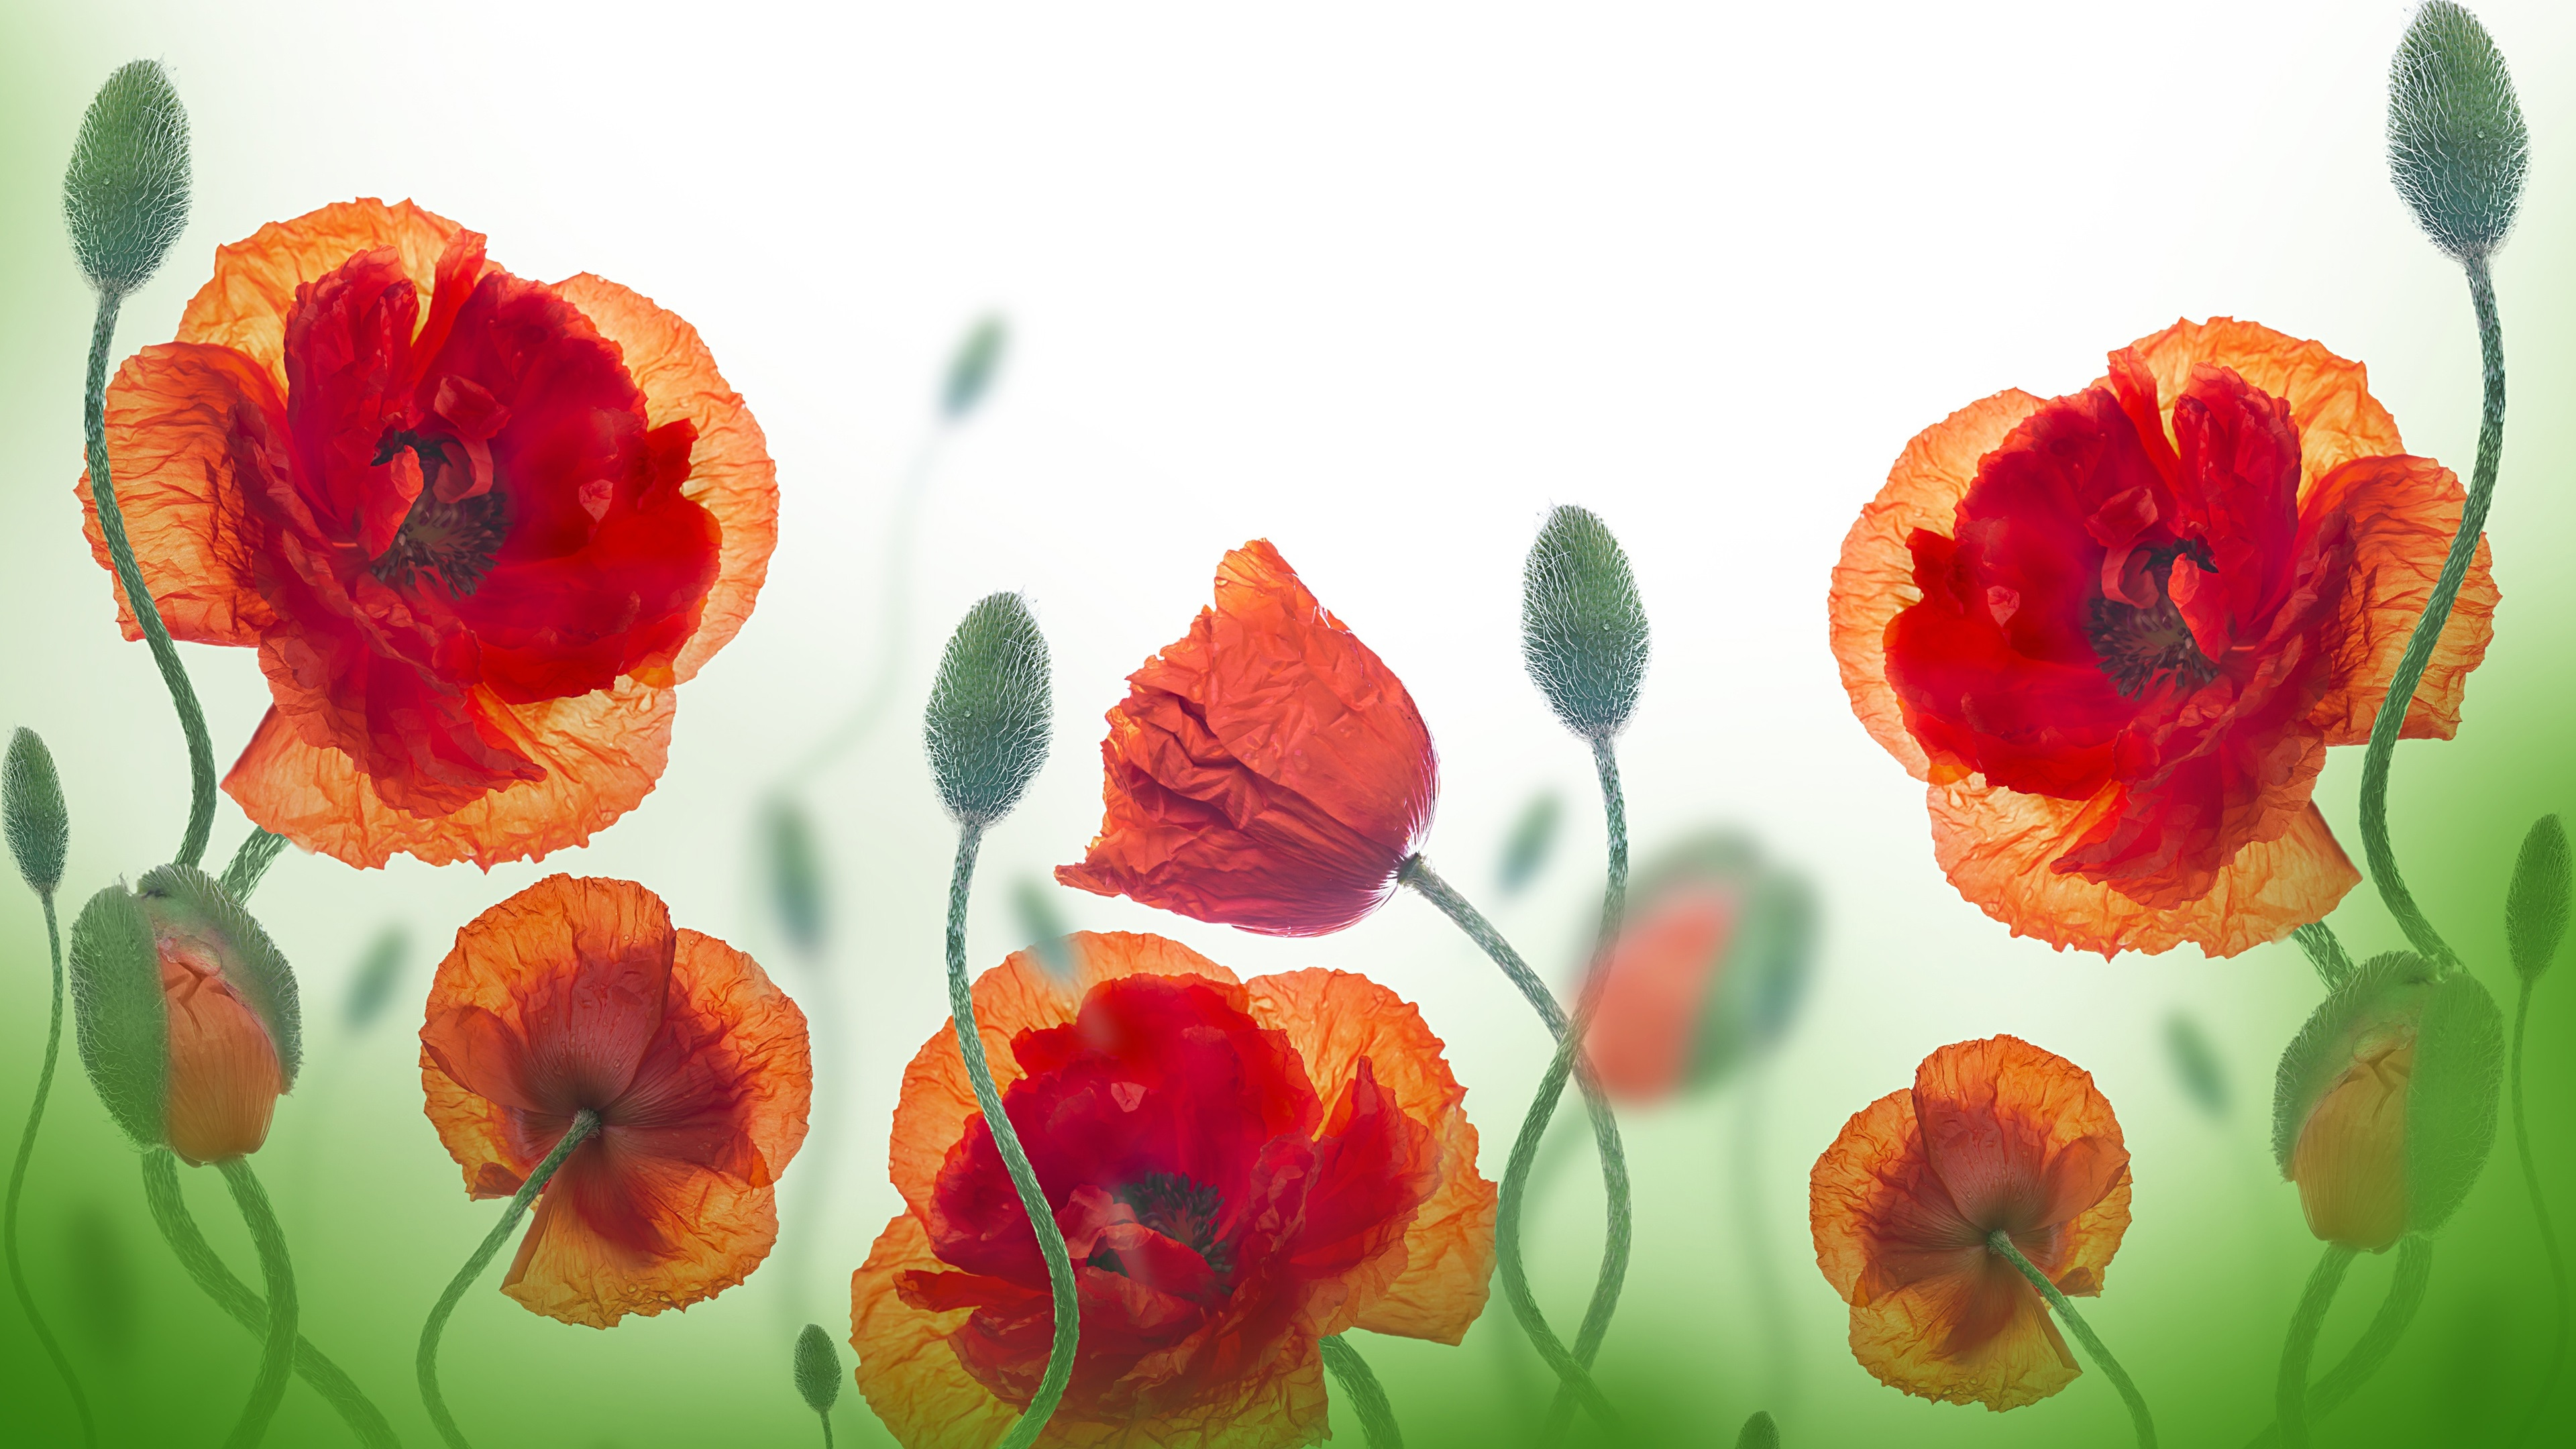 Wallpaper Wildflowers Poppy Red Flowers 3840x2160 Uhd 4k Picture